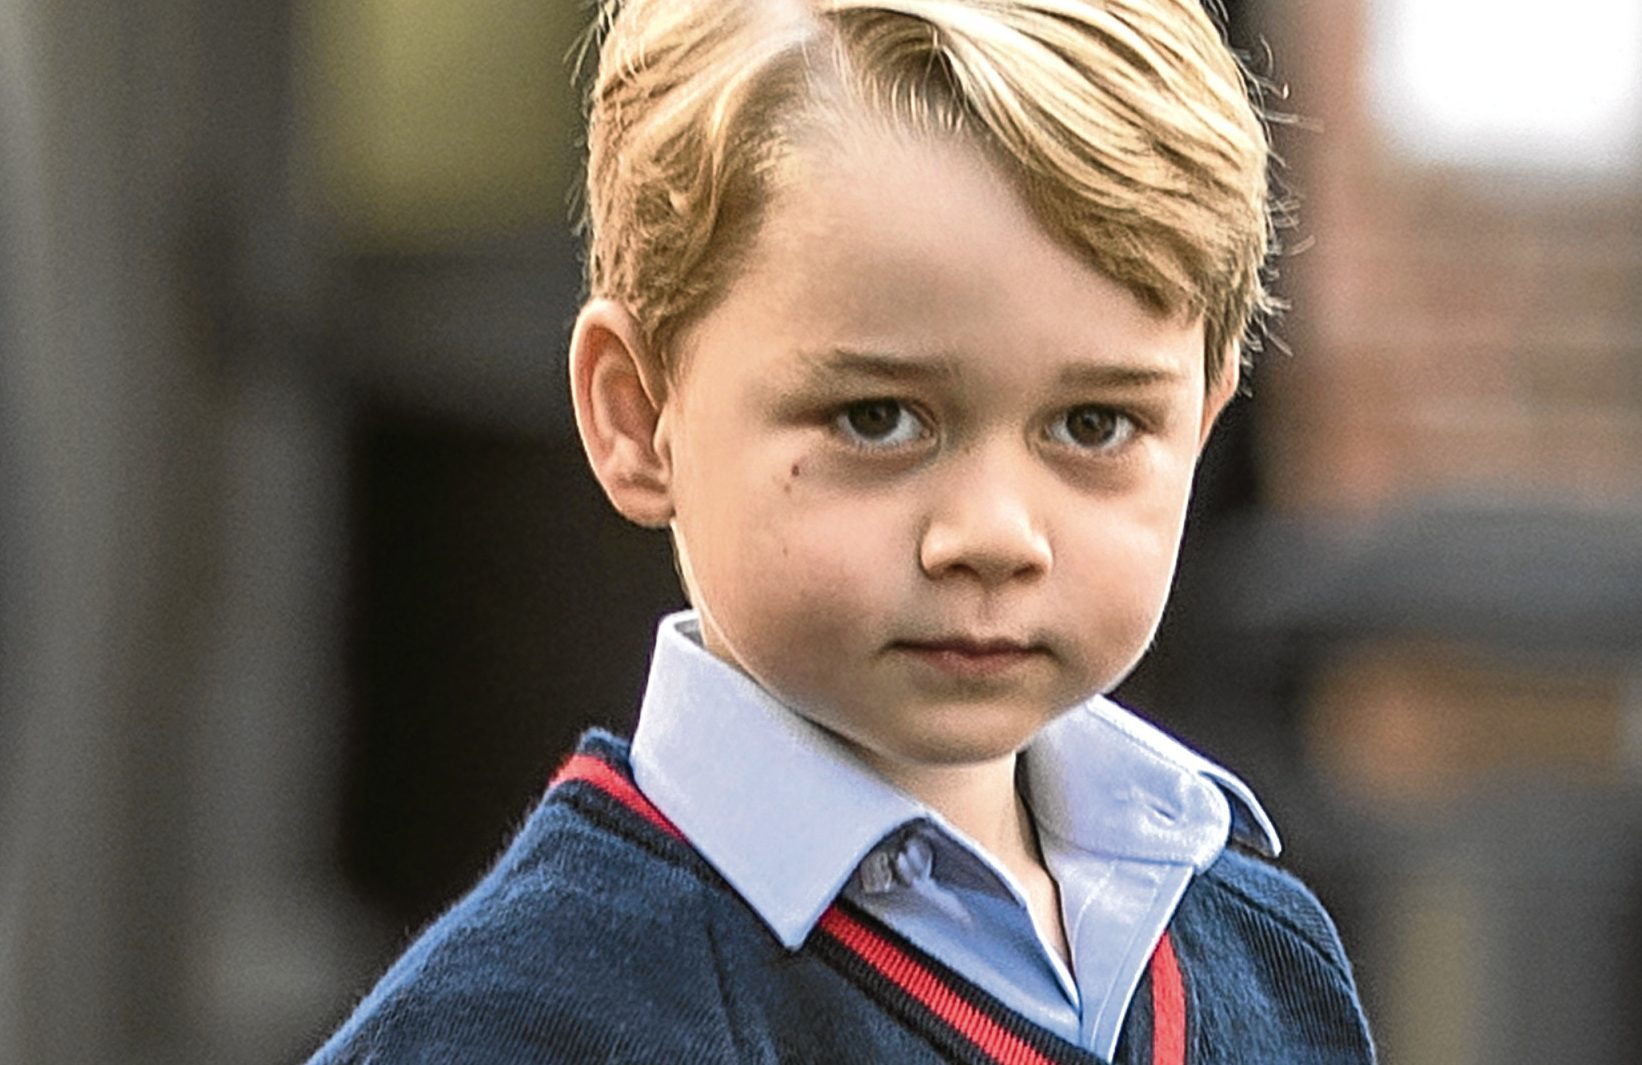 Prince George of Cambridge arrives for his first day of school (Richard Pohle - WPA Pool/Getty Images)